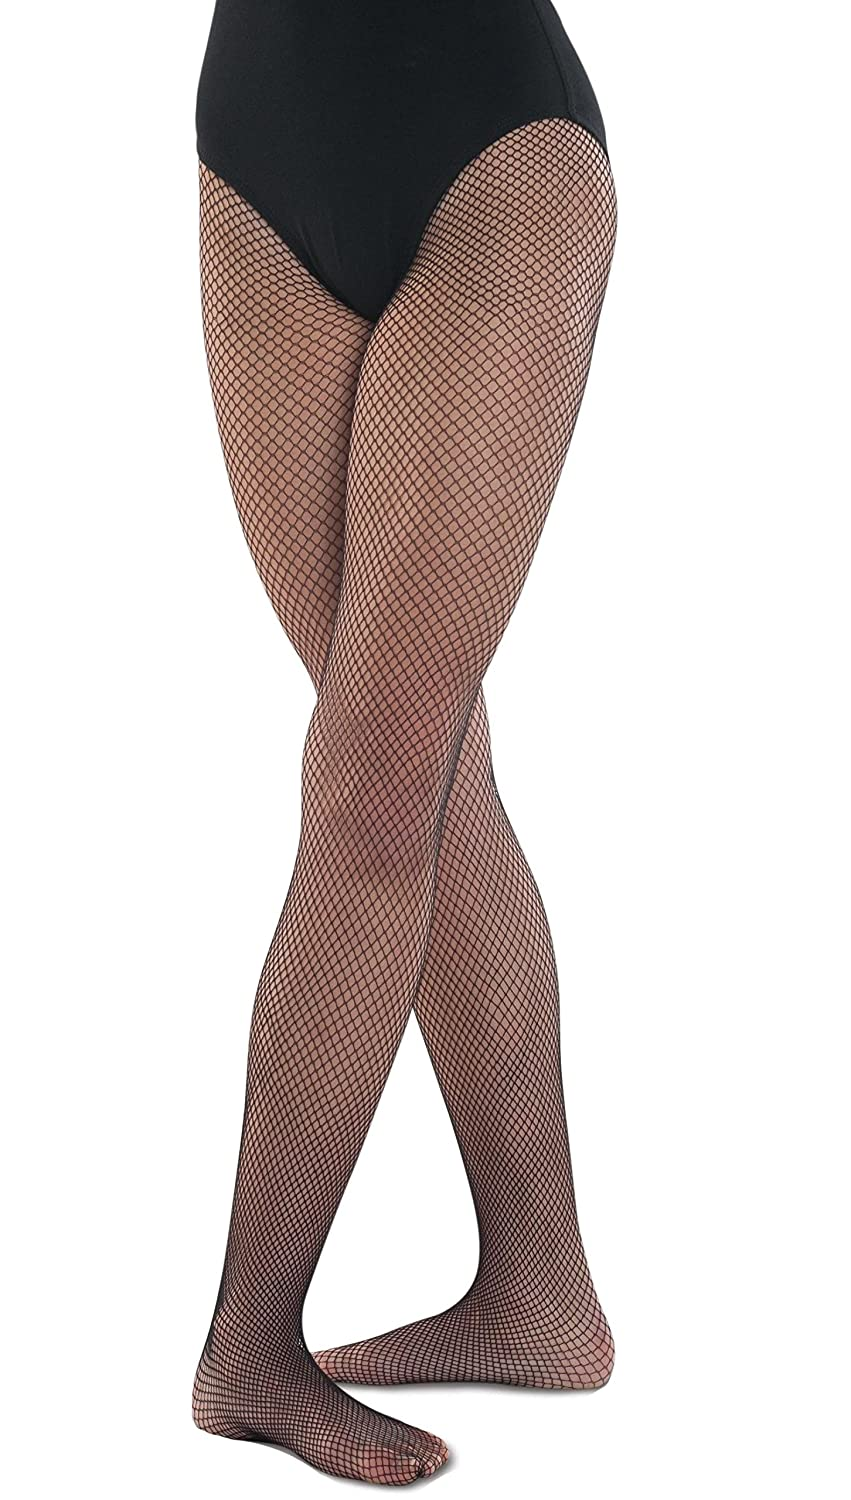 Adrian outstanding girls fishnet pantyhose 5-12 years